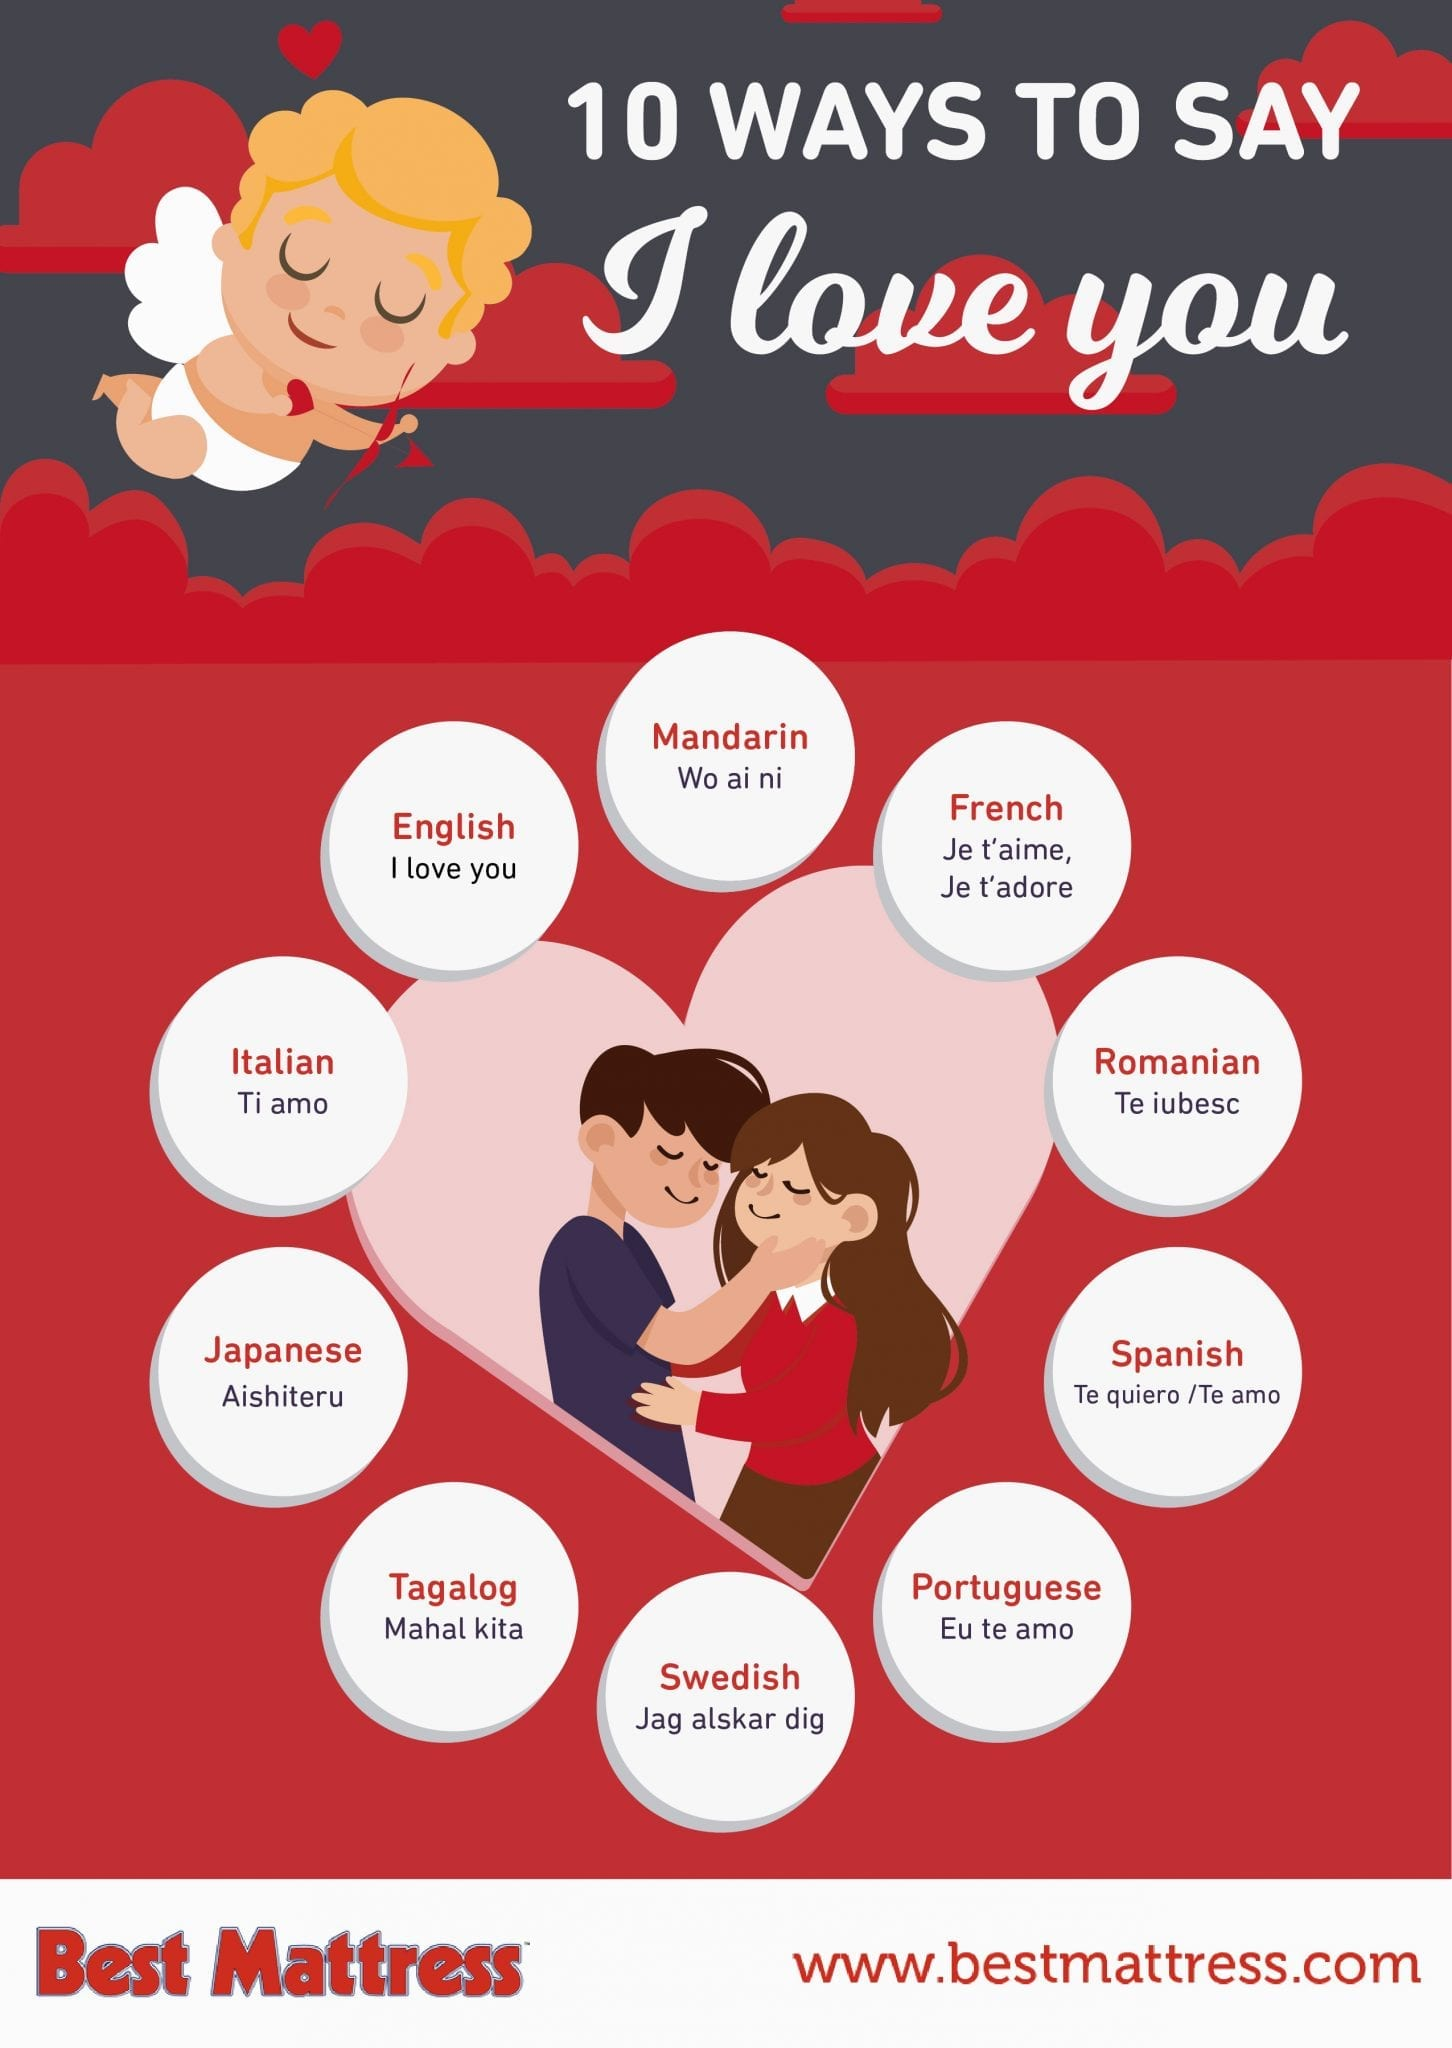 10 Ways To Say I Love You | Best Mattress